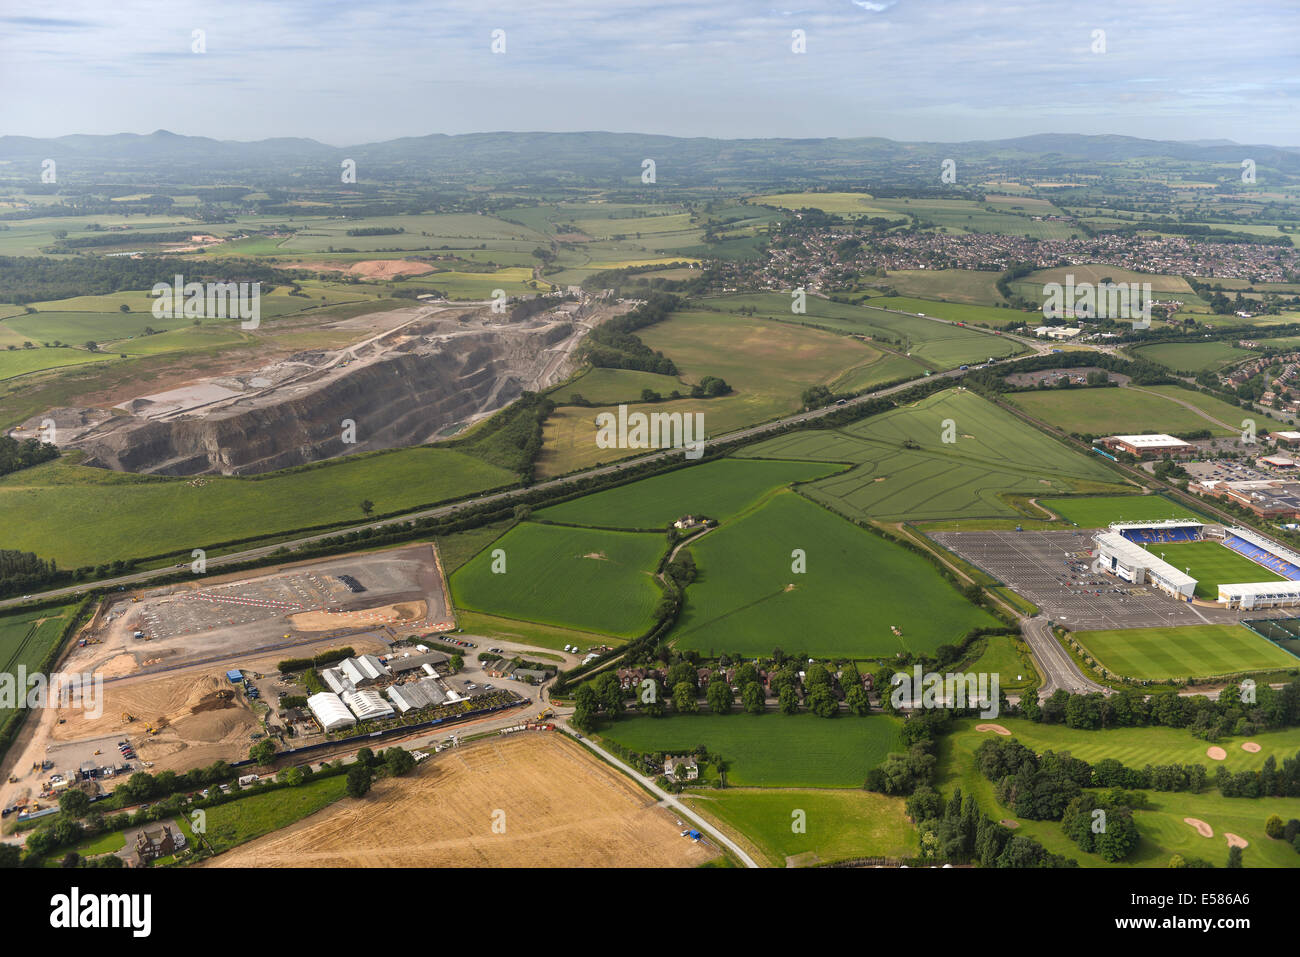 An aerial view looking south from Shrewsbury showing a quarry and distant Shropshire hills - Stock Image